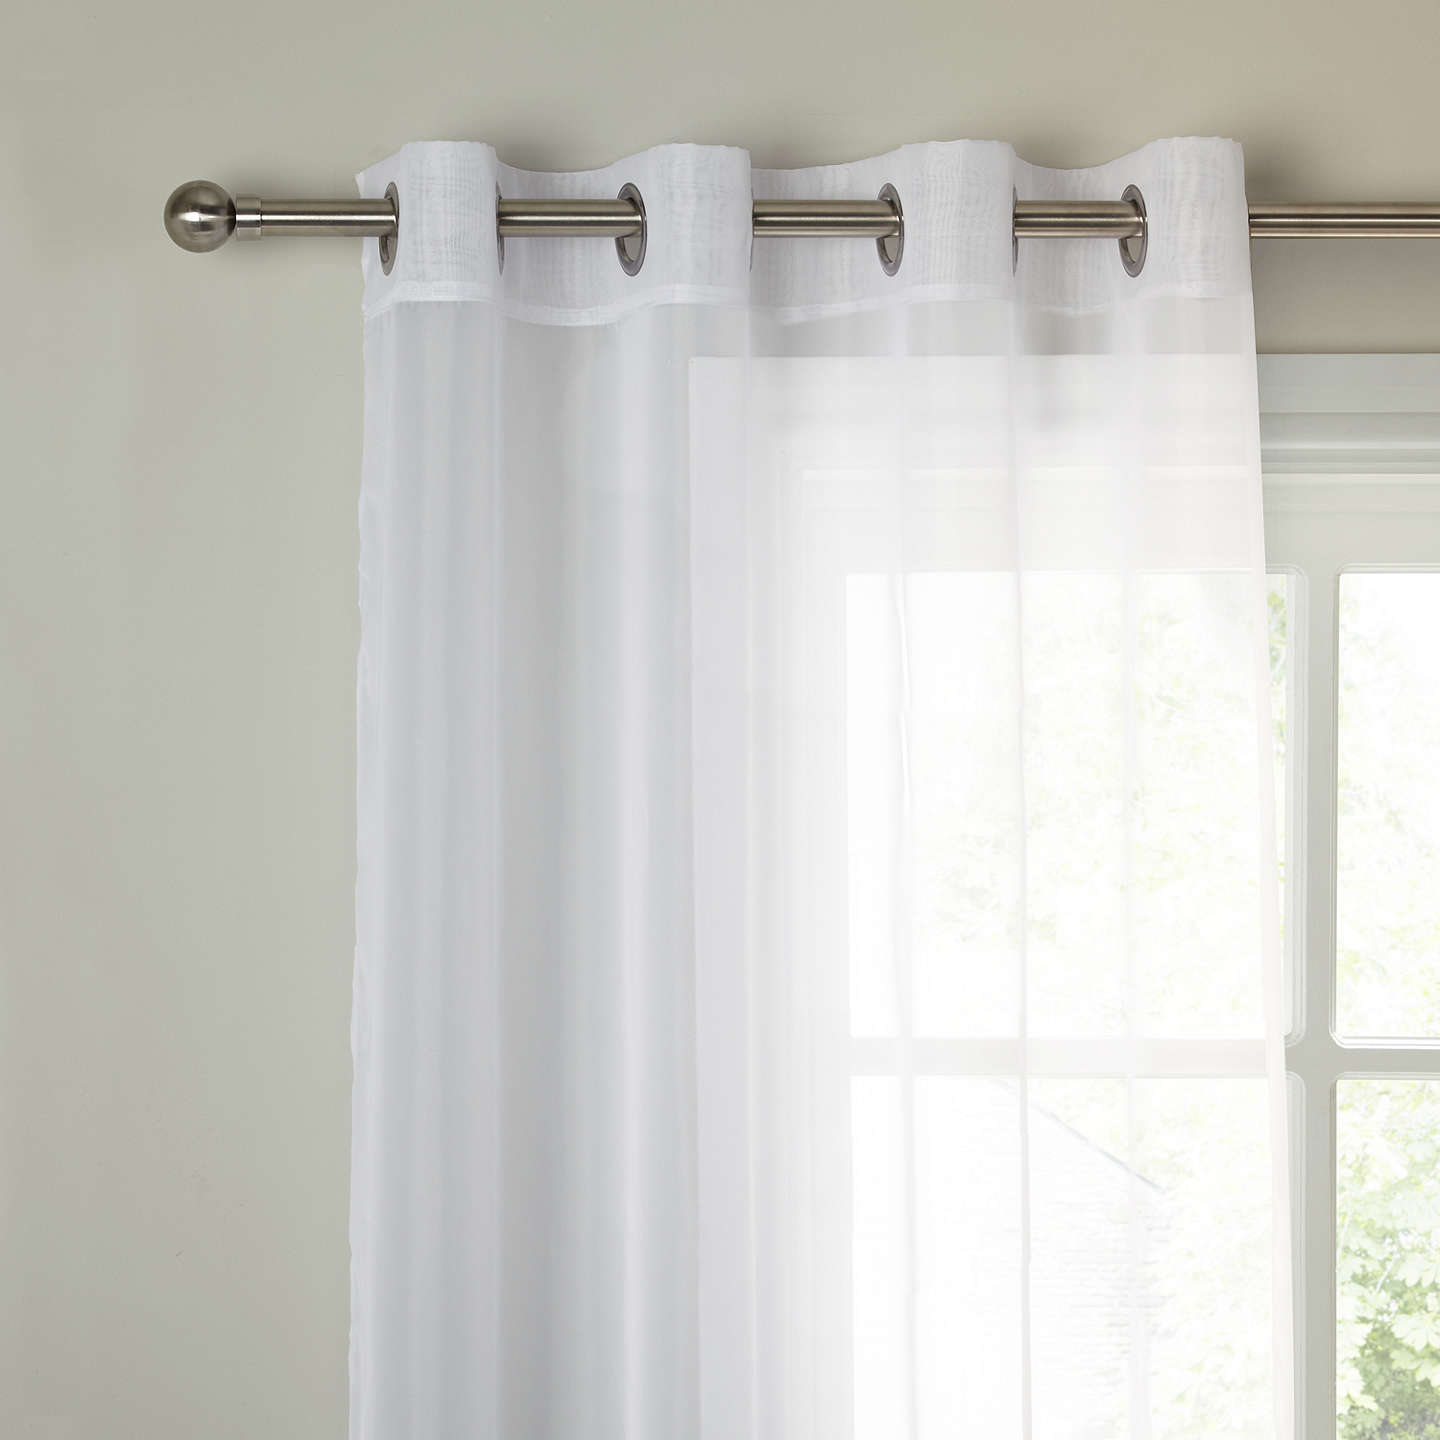 John Lewis The Basics Voile Eyelet Panel White At John Lewis